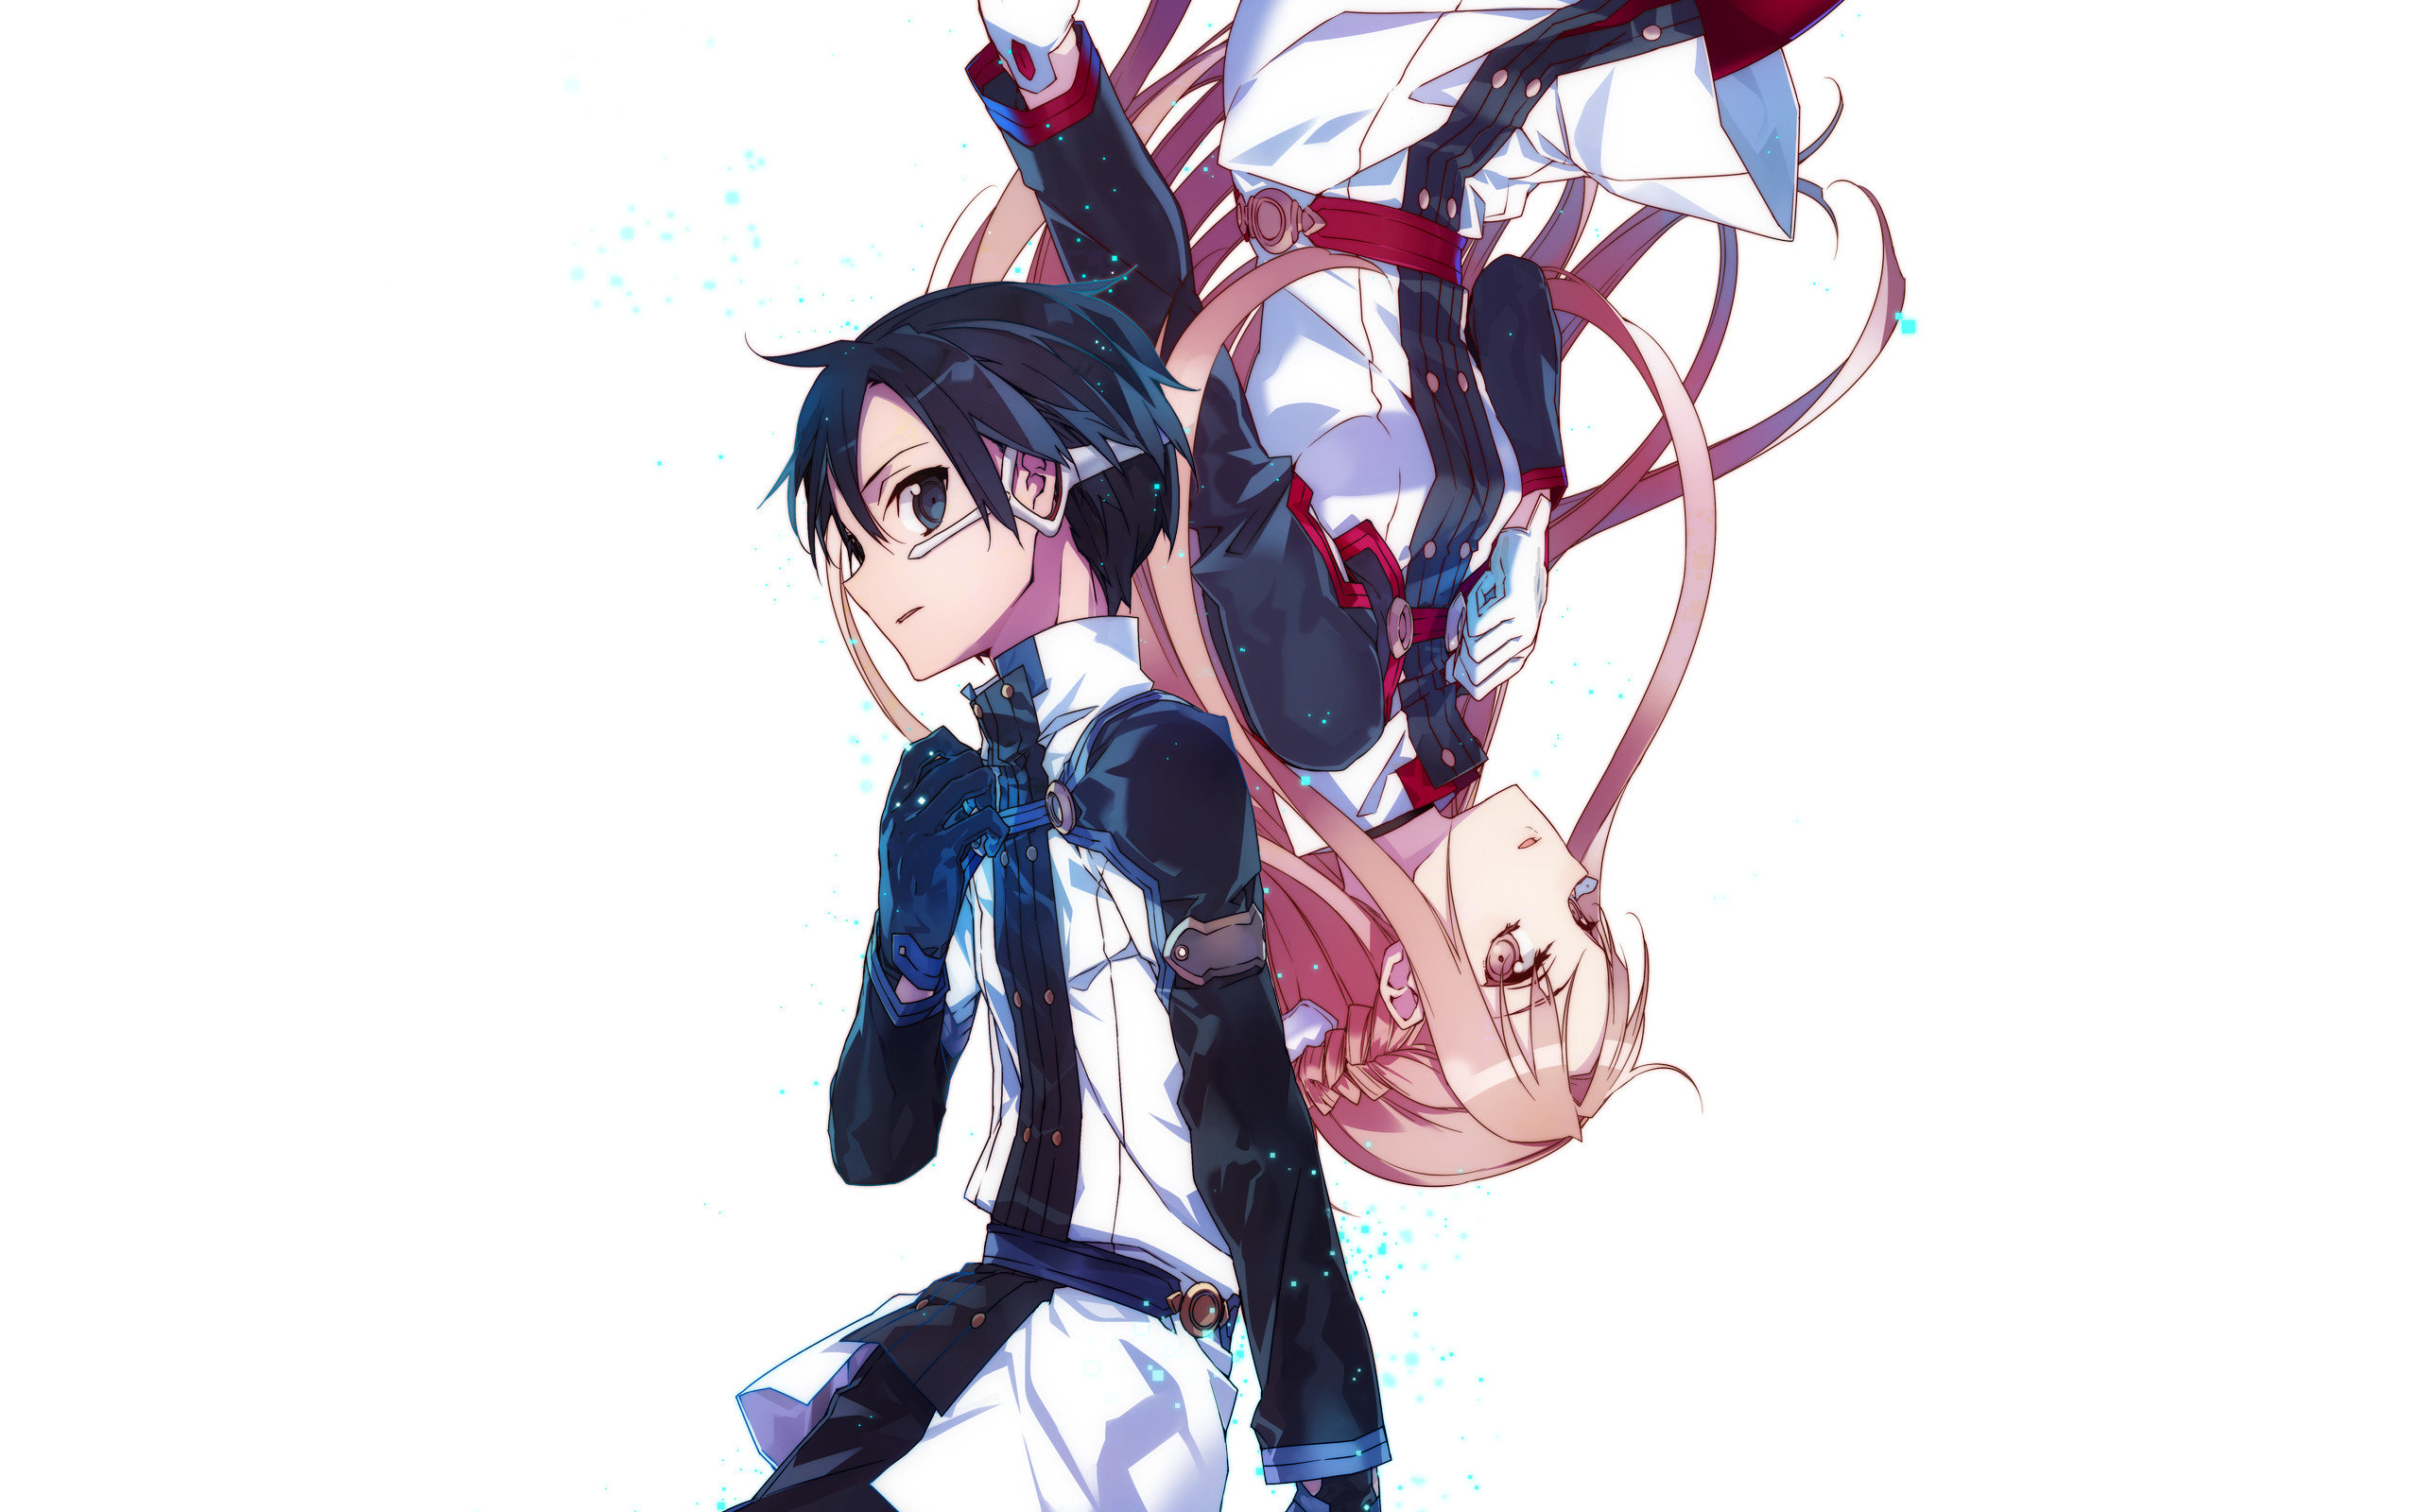 Wonderful Wallpaper Movie Sword Art Online - sword-art-online-movie-ordinal-scale-wallpaper-hd-2560x1600-243220  Image_548517.jpg